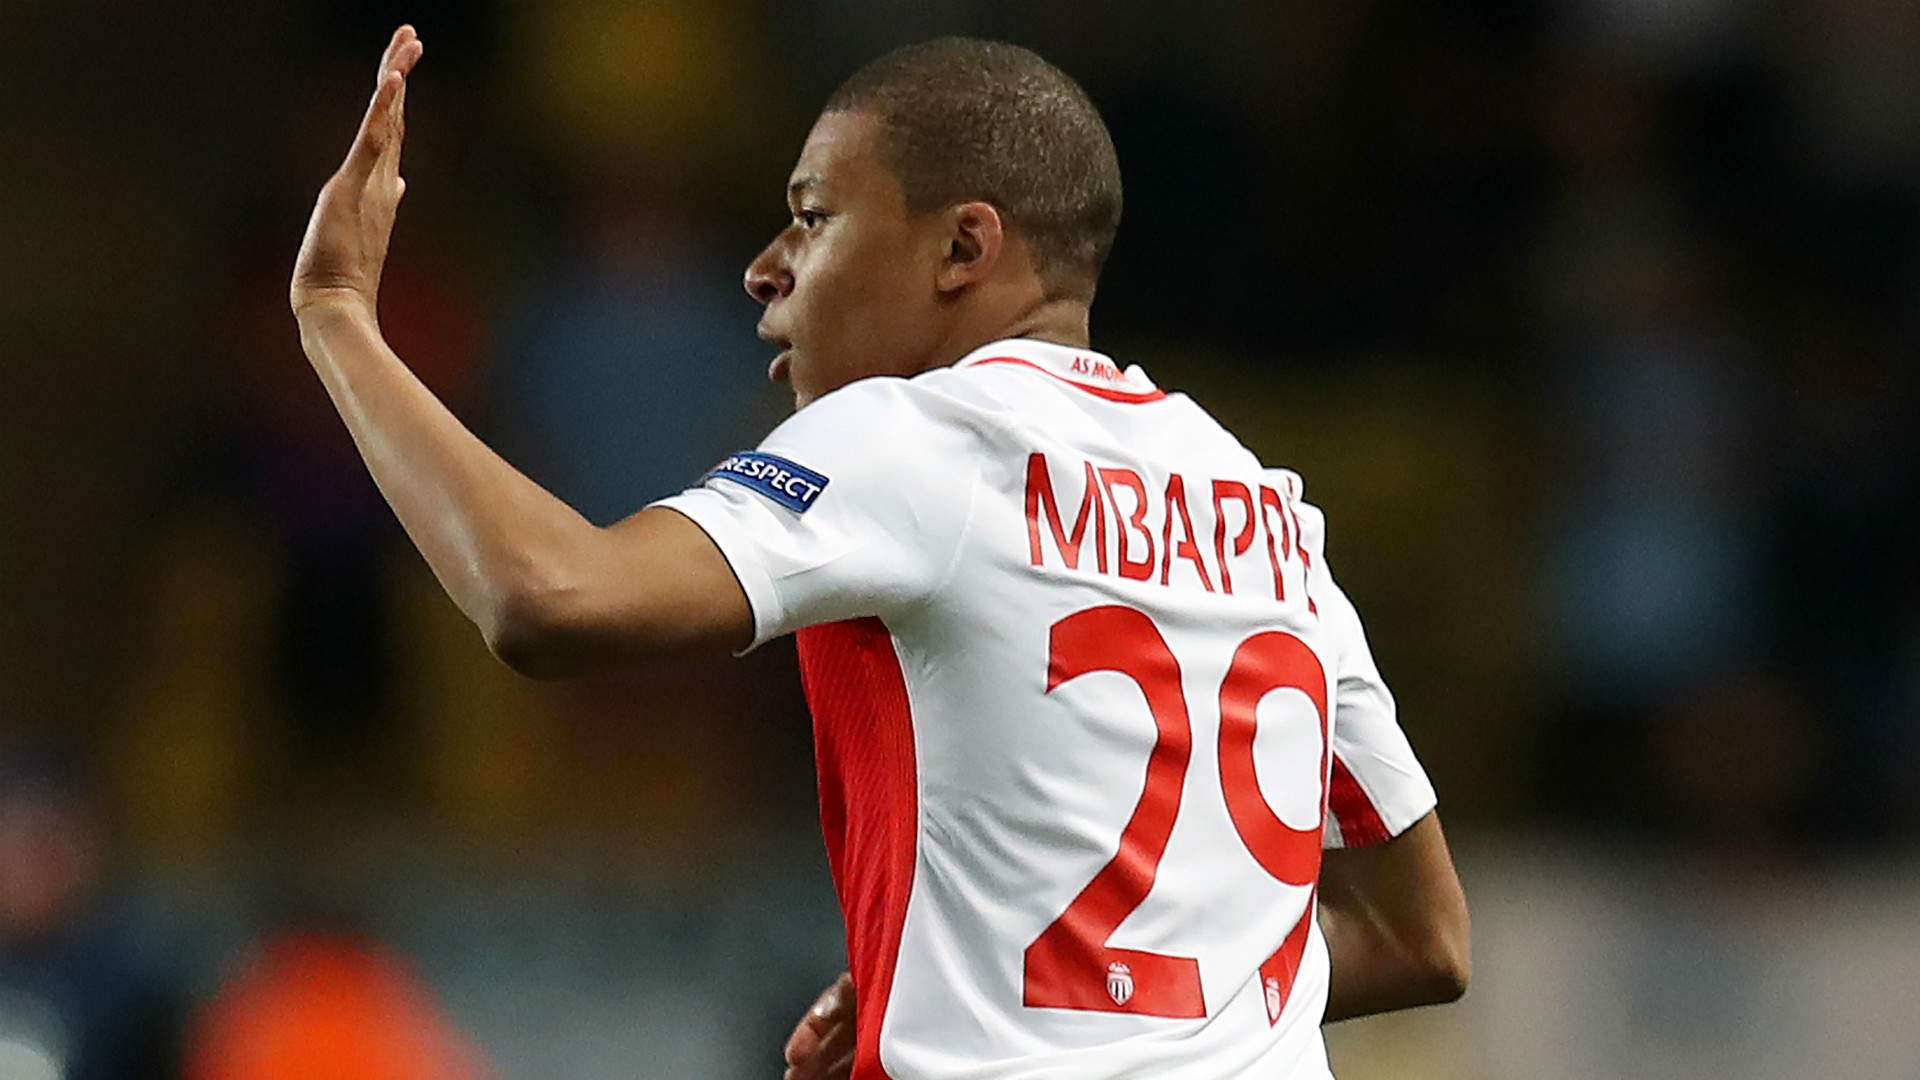 Mbappe Soccer Is About To Get A New Superstar Remember